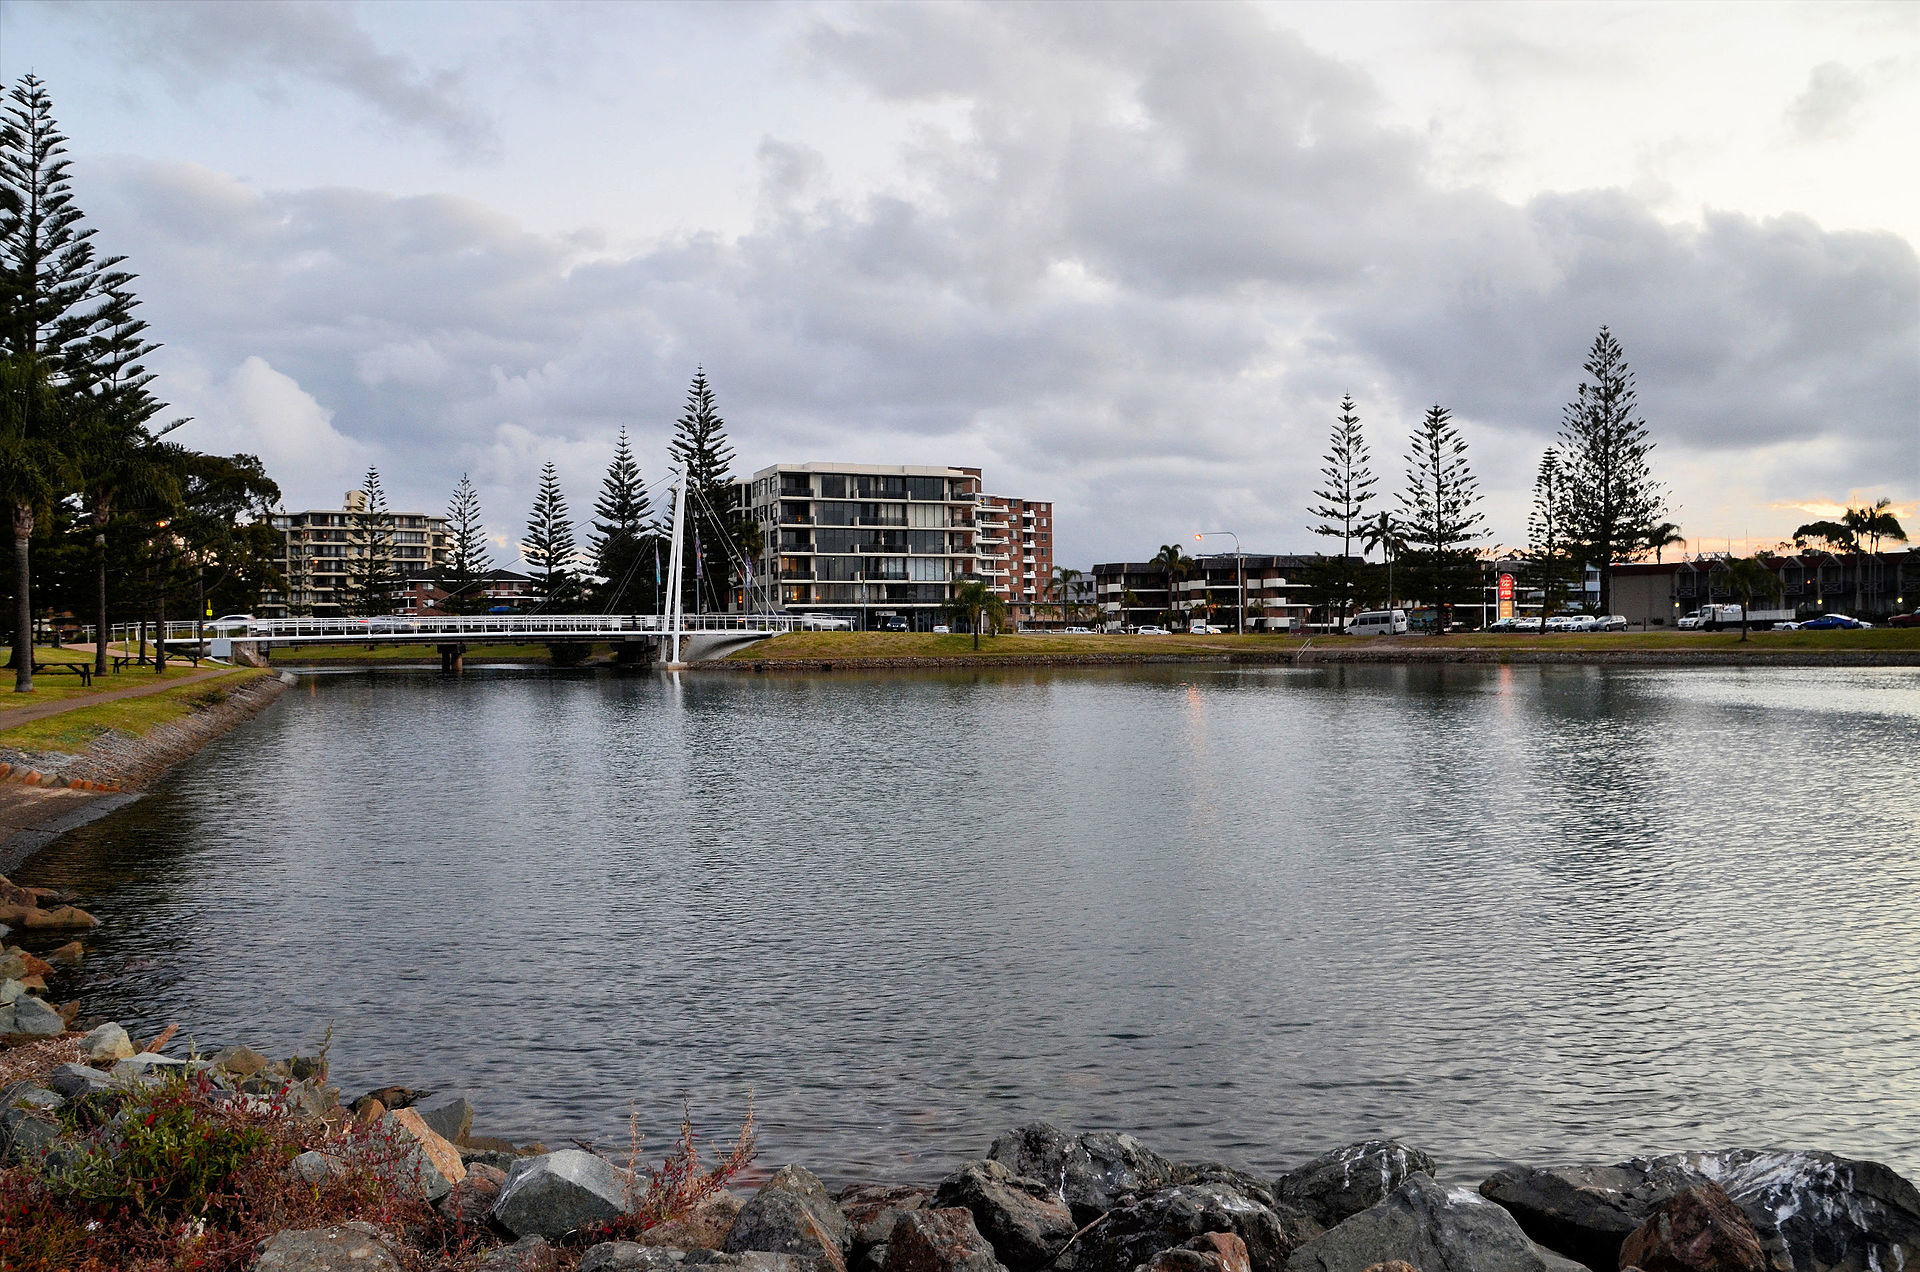 horizontal view of Port Macquarie, featuring a landscape of a lake